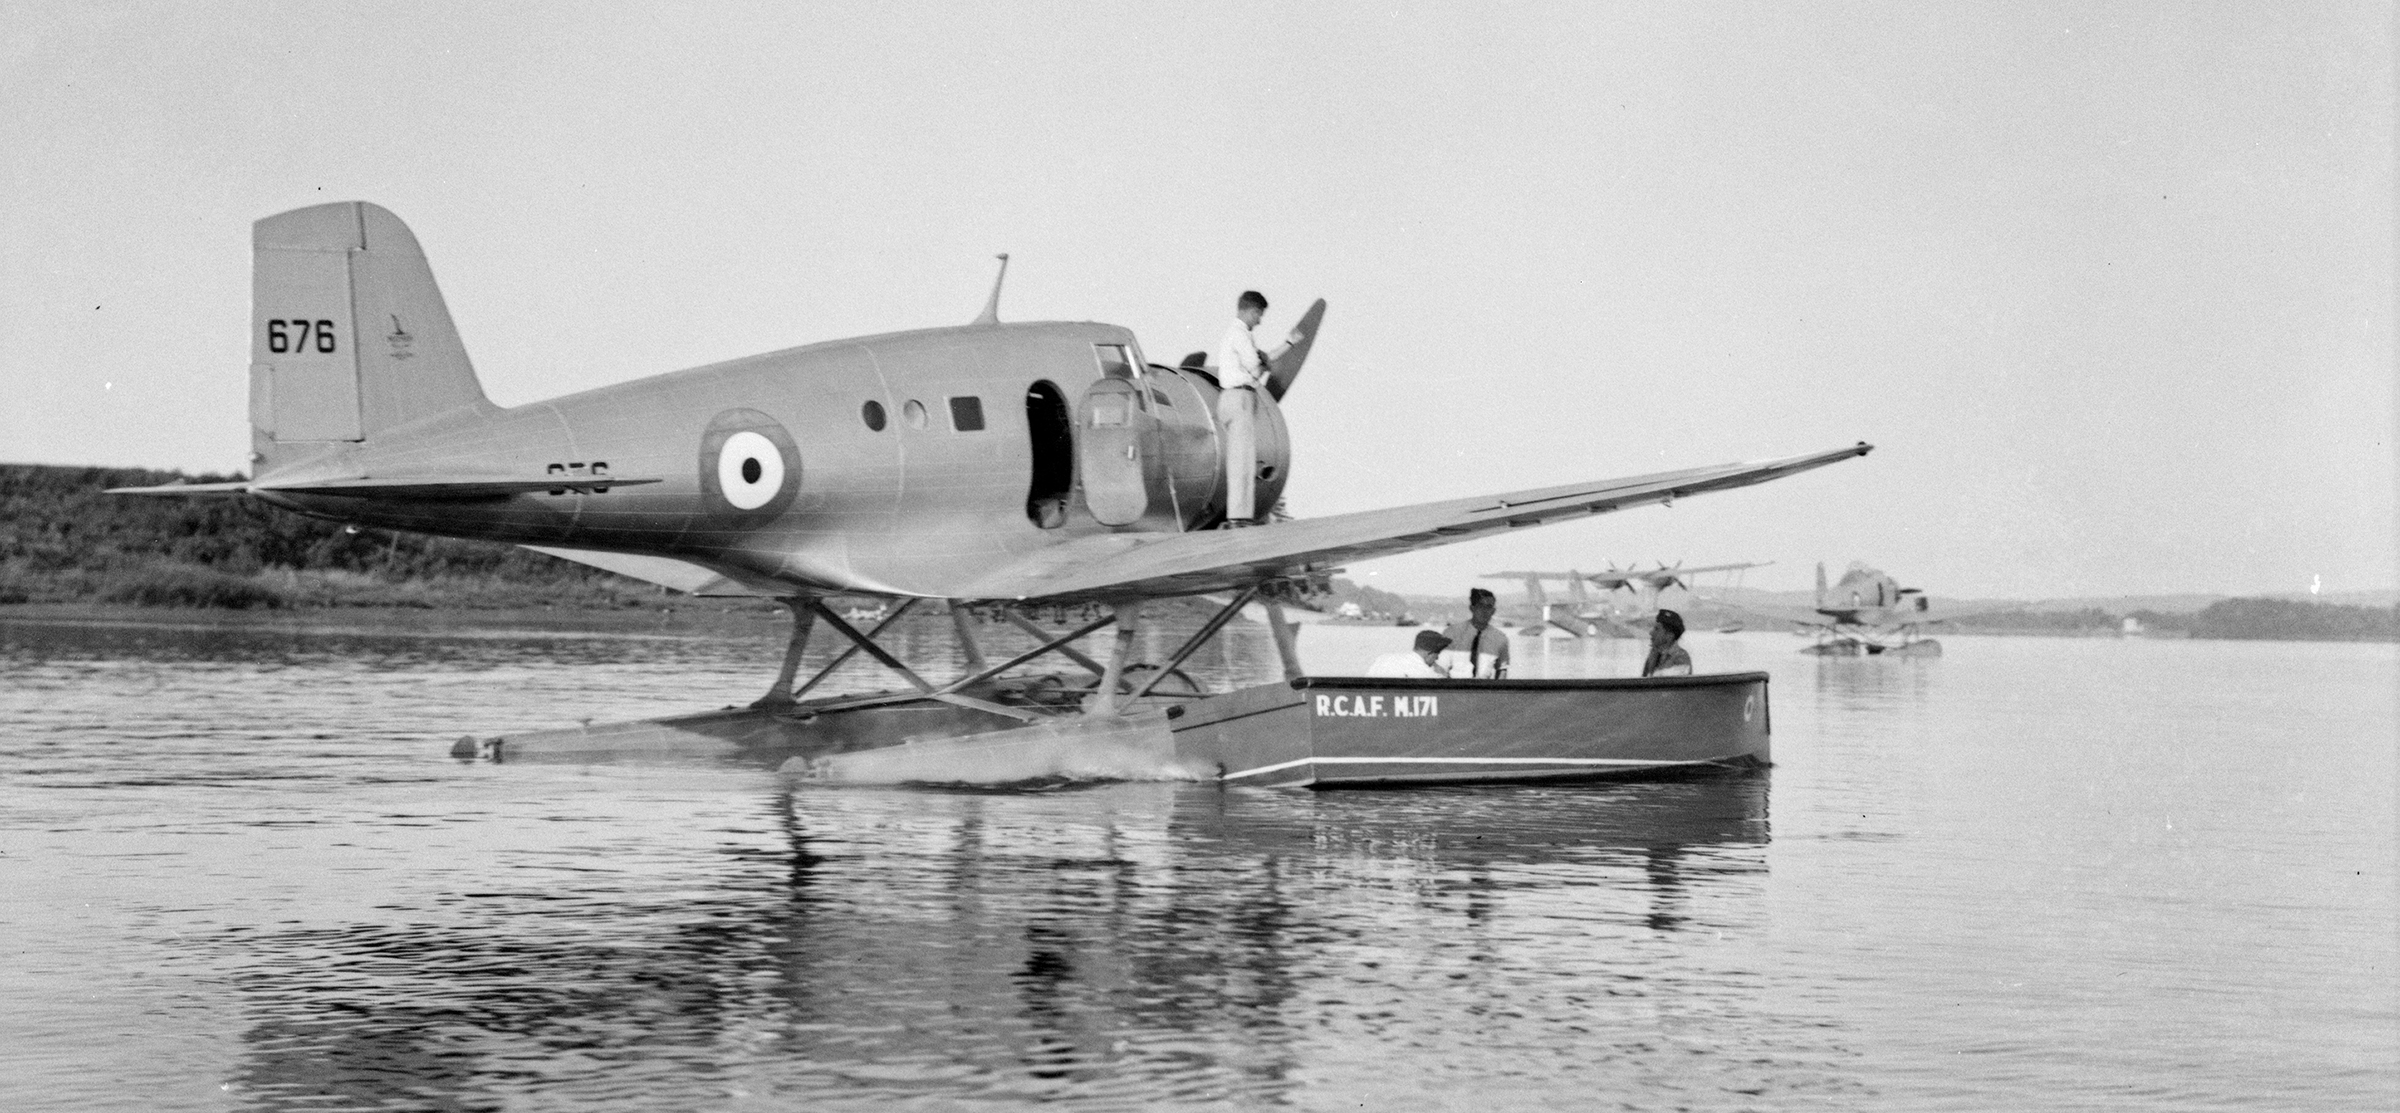 Supplies are loaded onto the RCAF's Northrop Delta No. 676 from 8 Squadron in preparation for a flight from Rockcliffe, Ontario, to Sydney, Nova Scotia, on August 26, 1939. Note the powered launch belonging to the RCAF Marine Service. PHOTO: DND, PA-063532